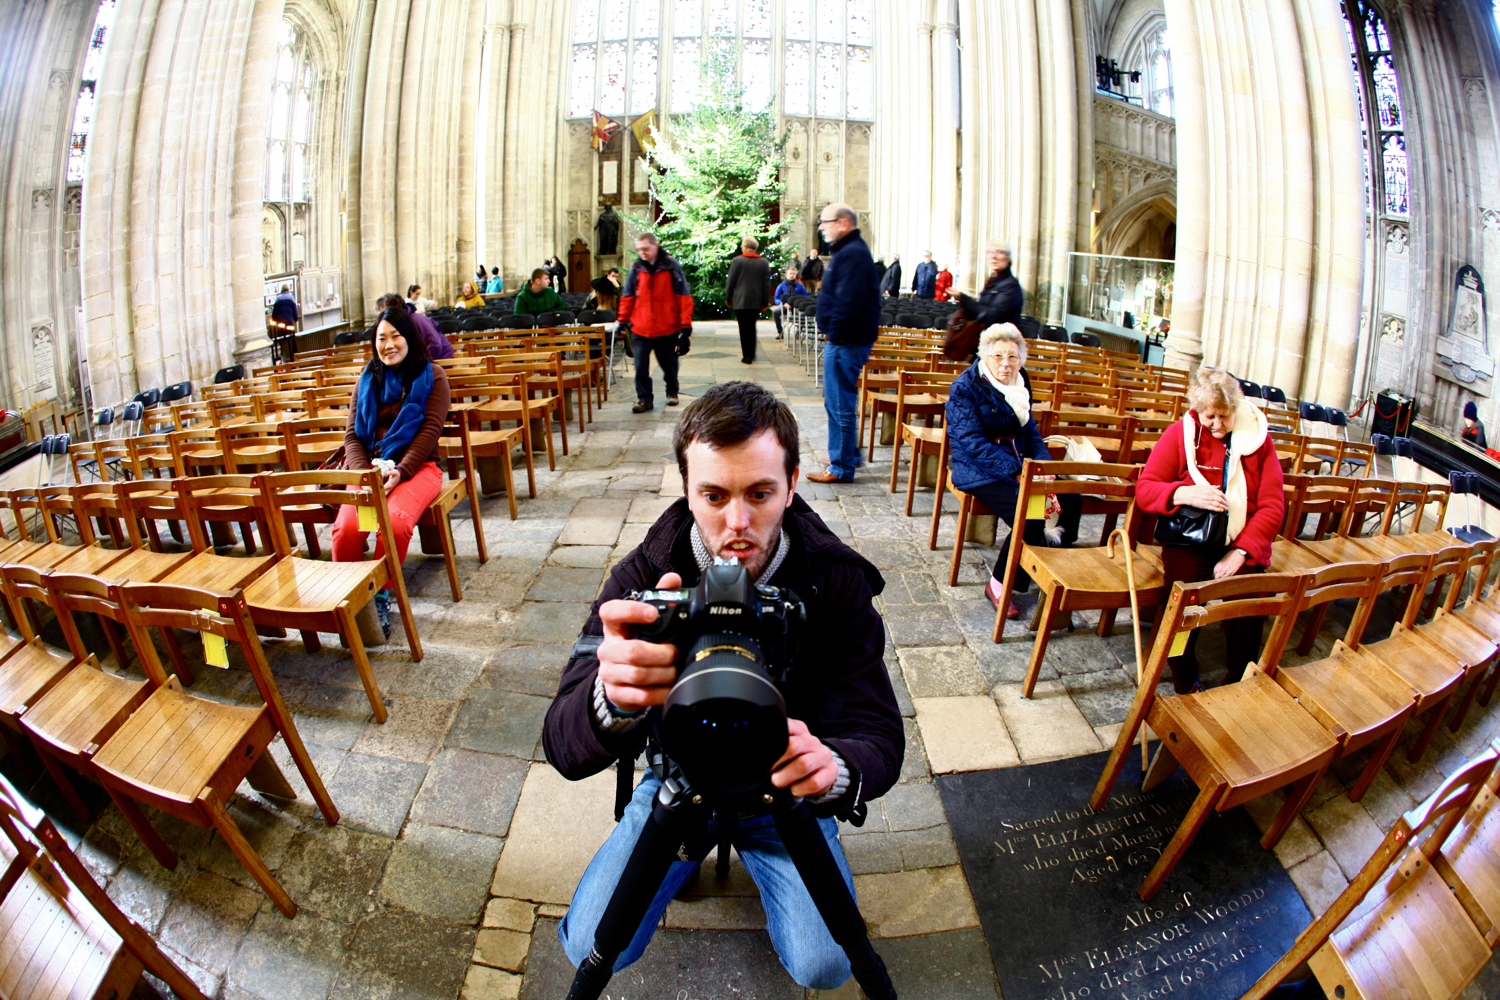 Image: A tripod combined with a decent wide-angle lens. This is a great architecture photography equ...